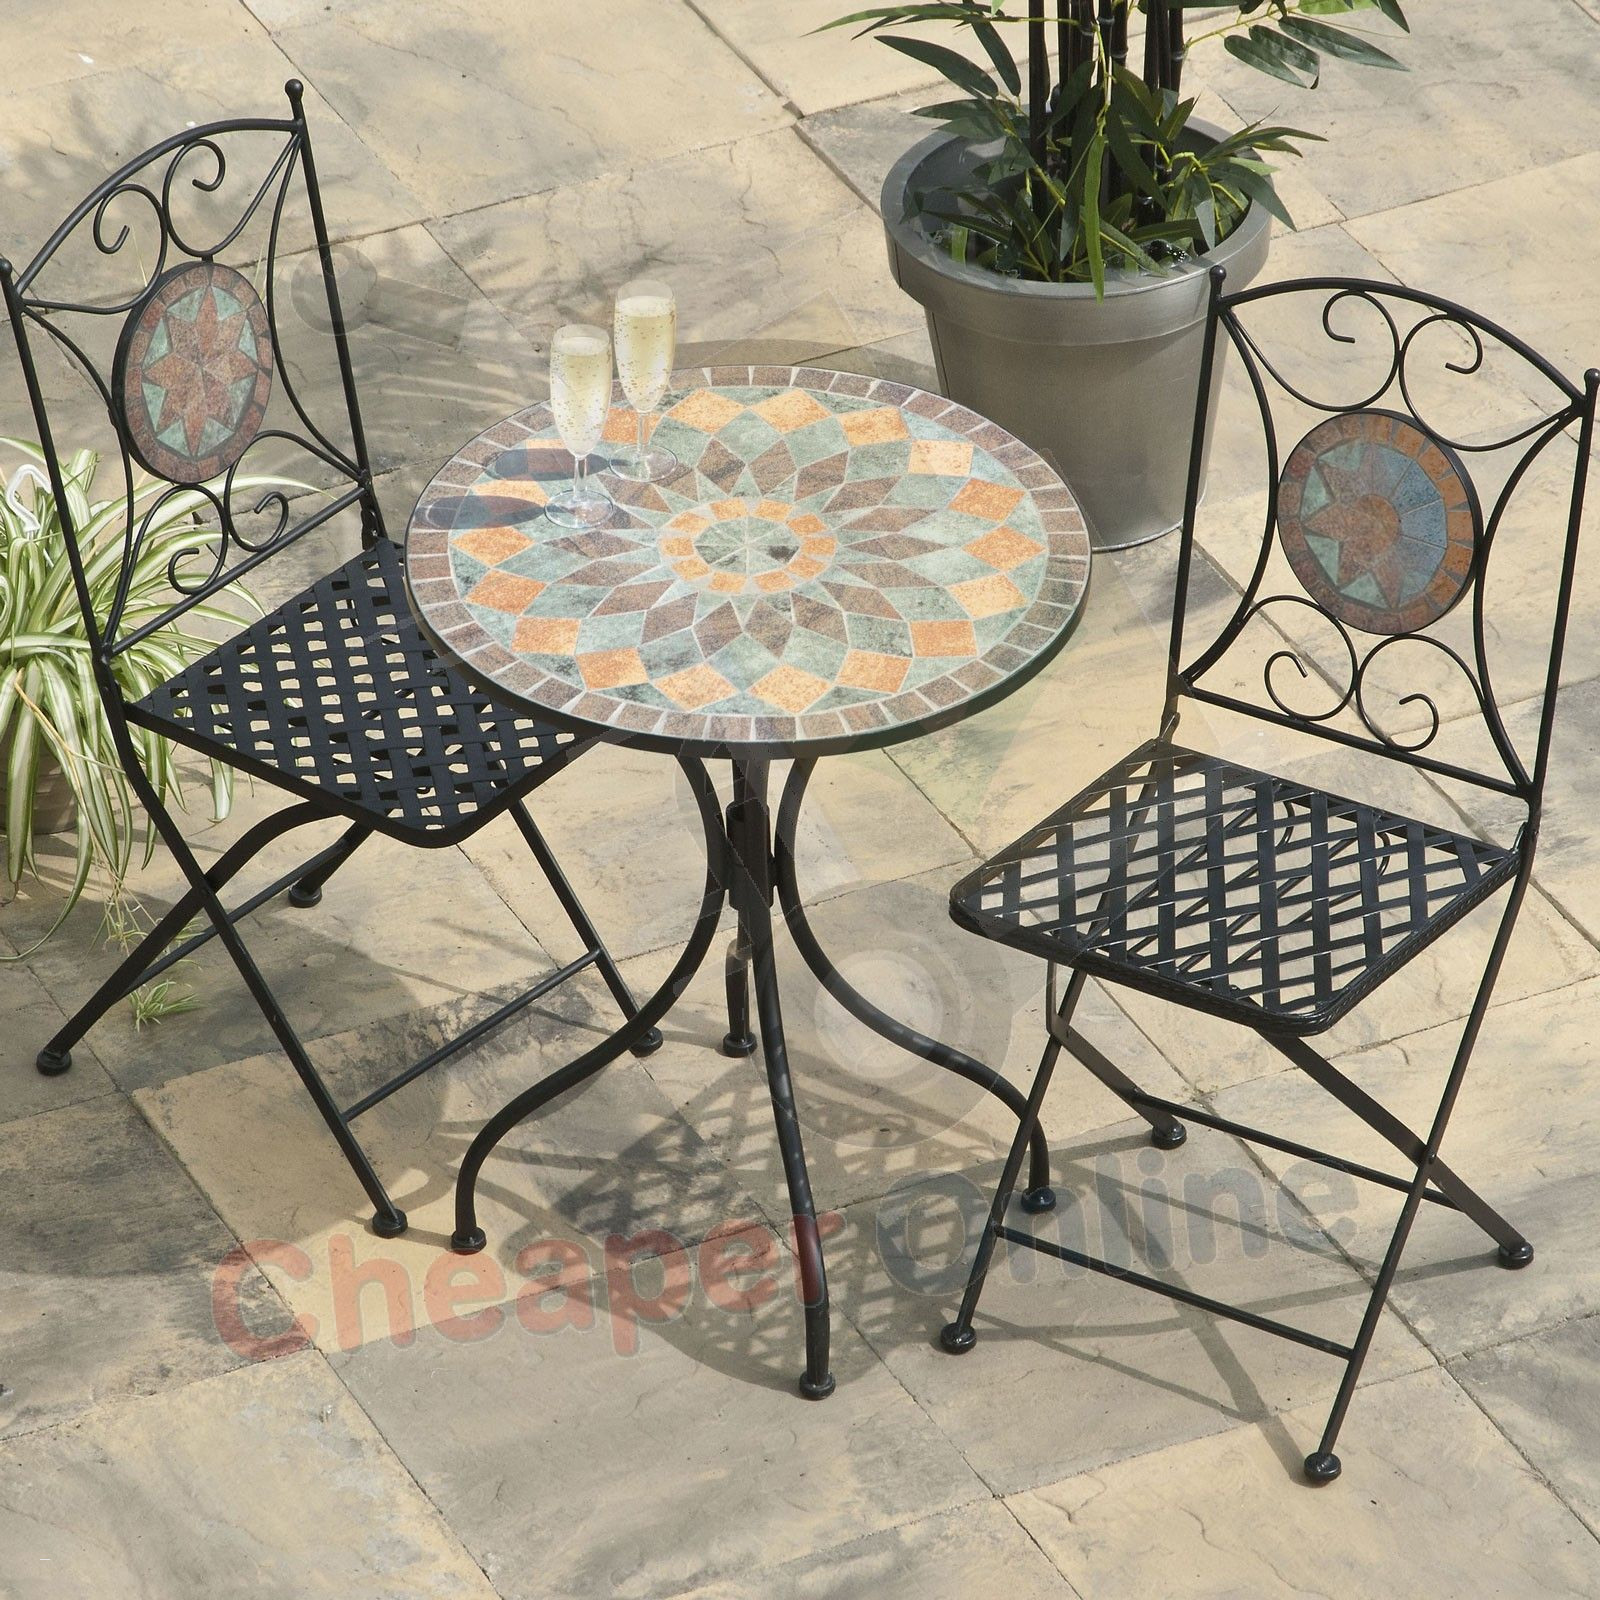 patio table mosaic top ideas dining tables for tile diy outdoor side full size lovely metal furniture search garden sofa small space living room accent bedroom espresso wood end